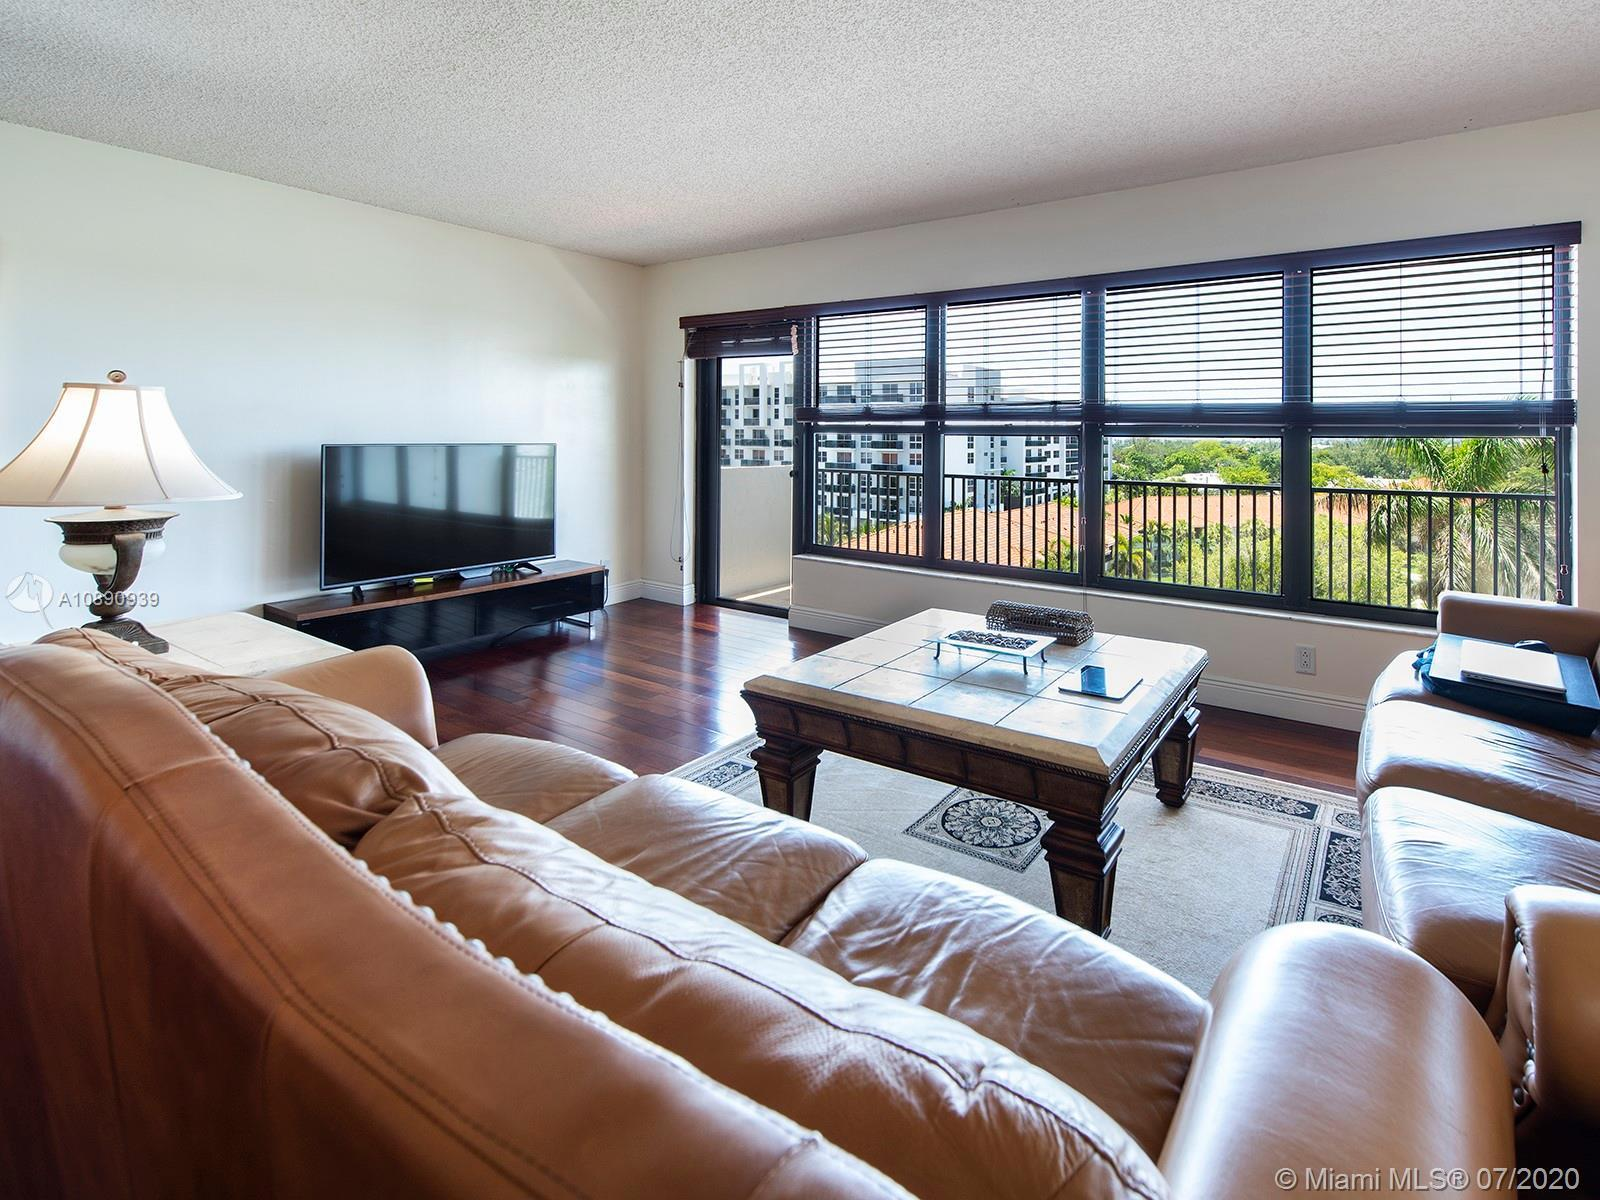 Relax in tranquility and enjoy the expansive views overlooking the boat docks and Fort Lauderdale sk